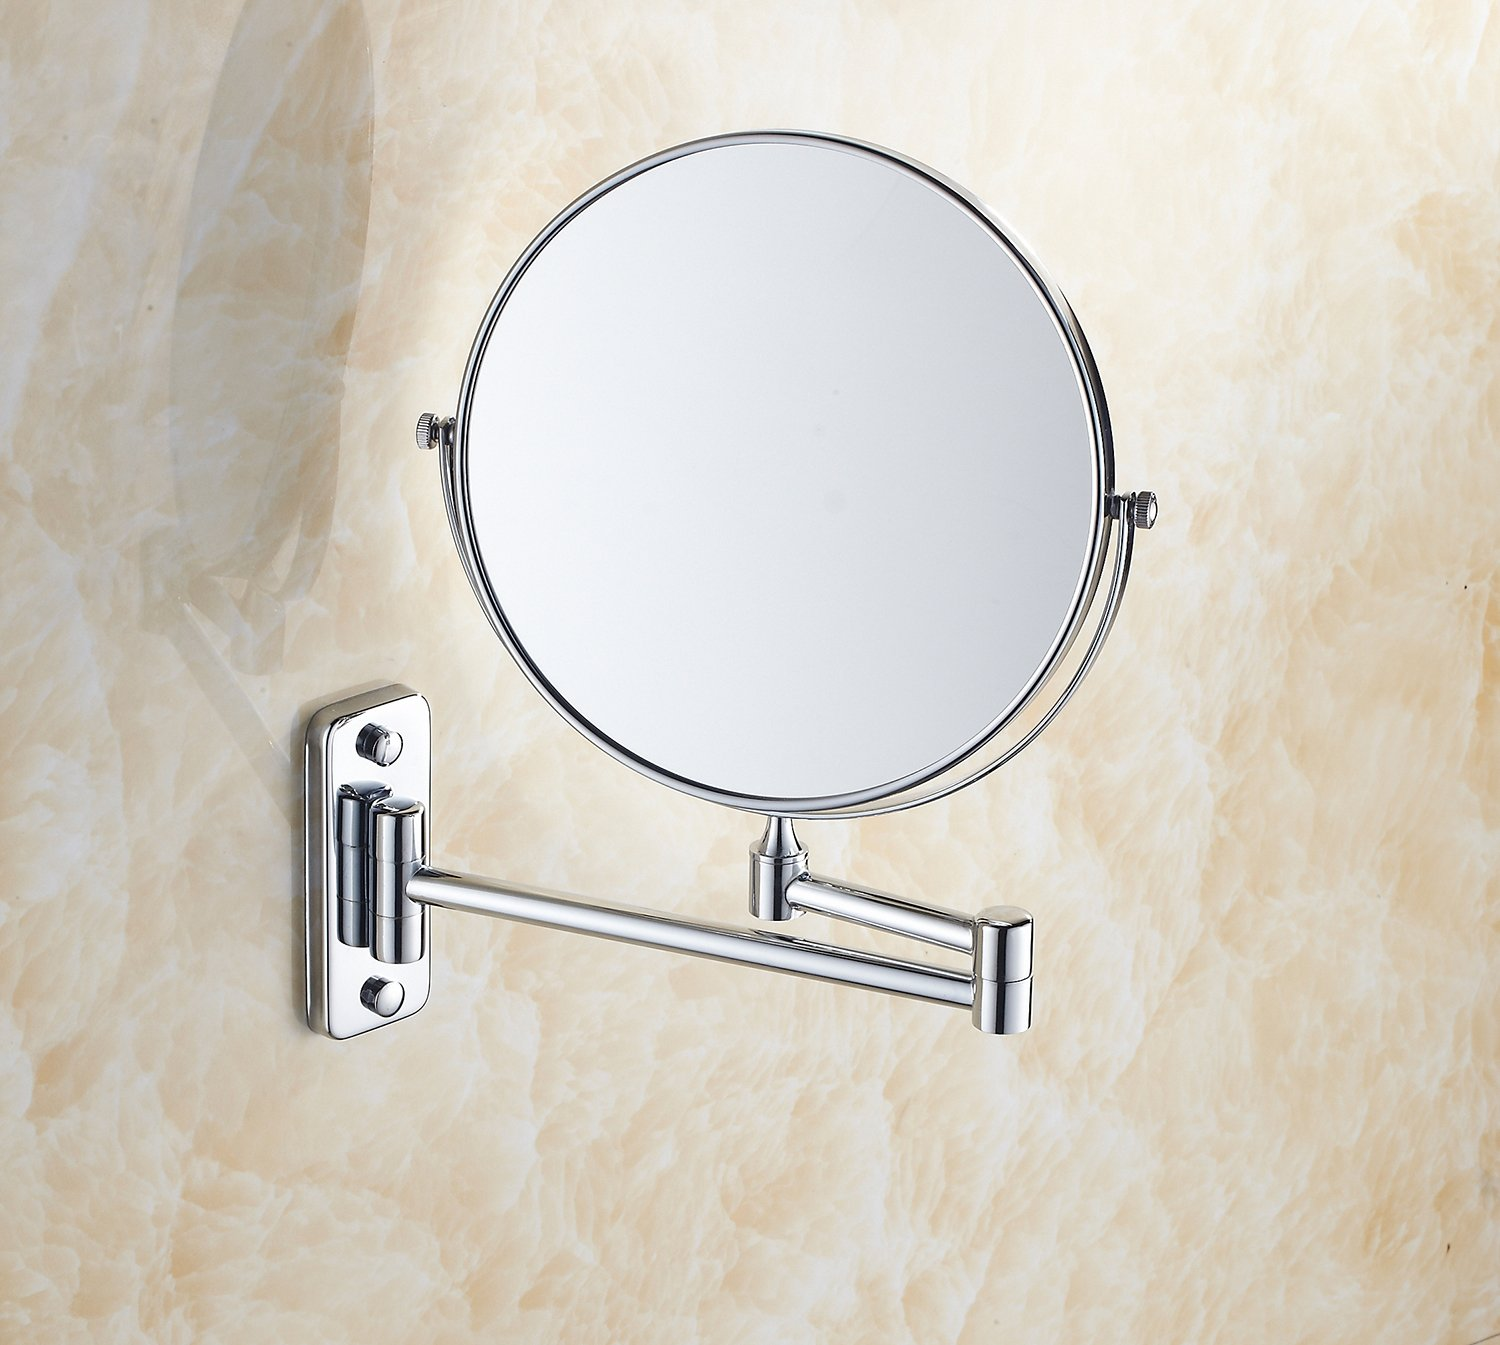 IBeaty Bathroom Mirror 8 inch Wall Mount Makeup Mirror Double-Sided Face Mirror, Swivel Vanity Mirror 1x and 7x Magnification Polished Chrome Finished by IBeaty (Image #3)